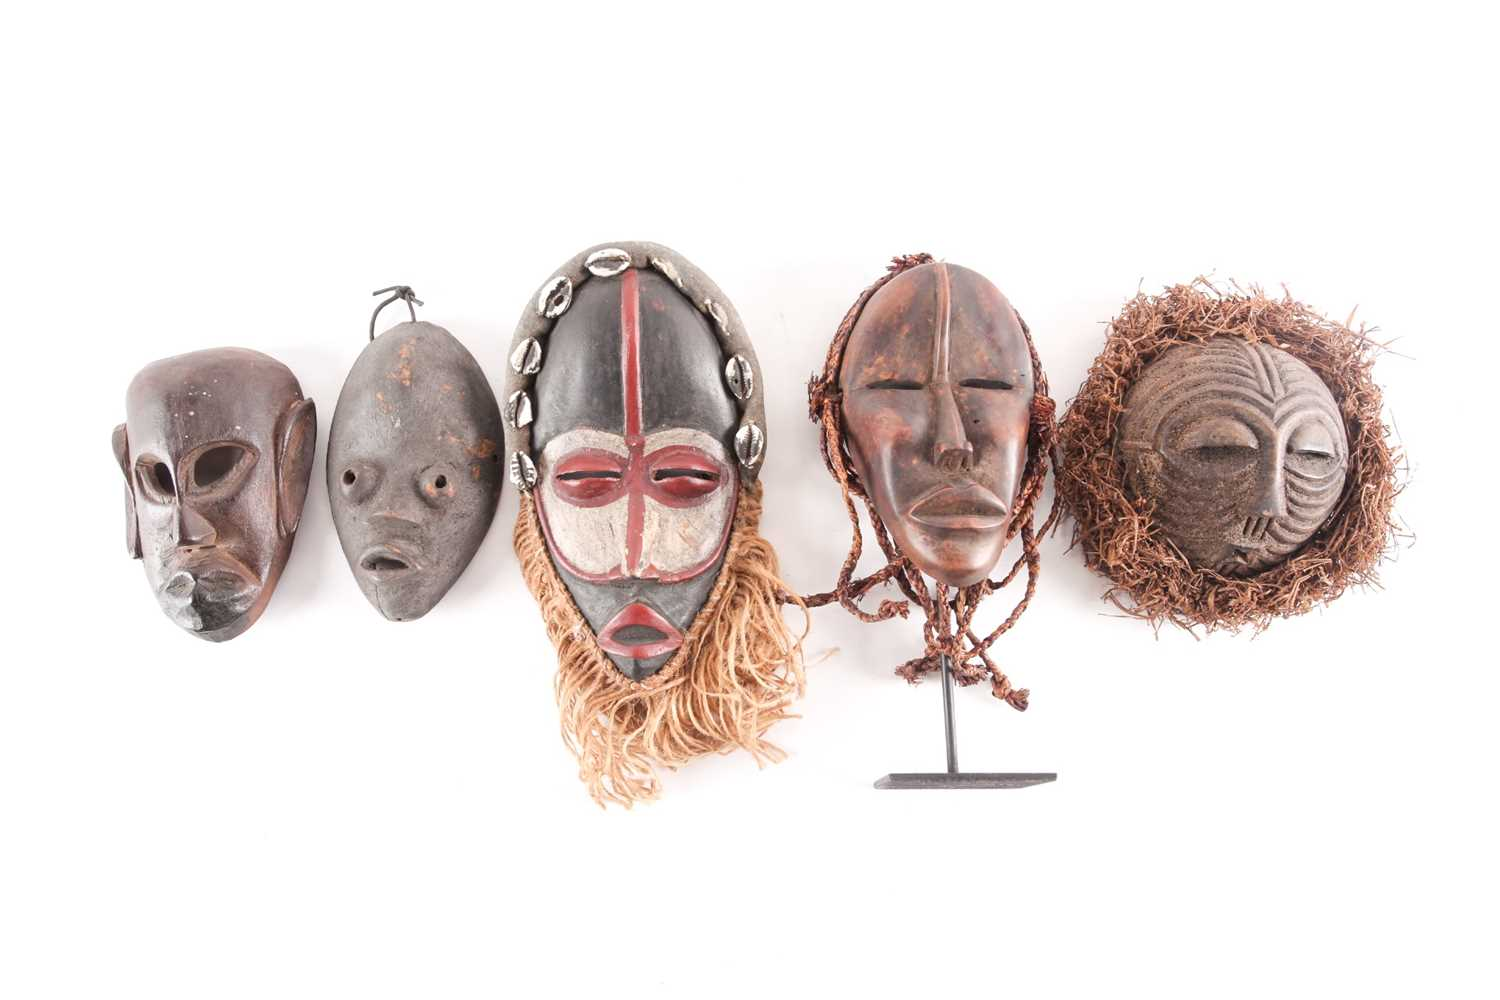 Three Dan passport masks, Ivory coast, one with long woven natural fibres above a median line